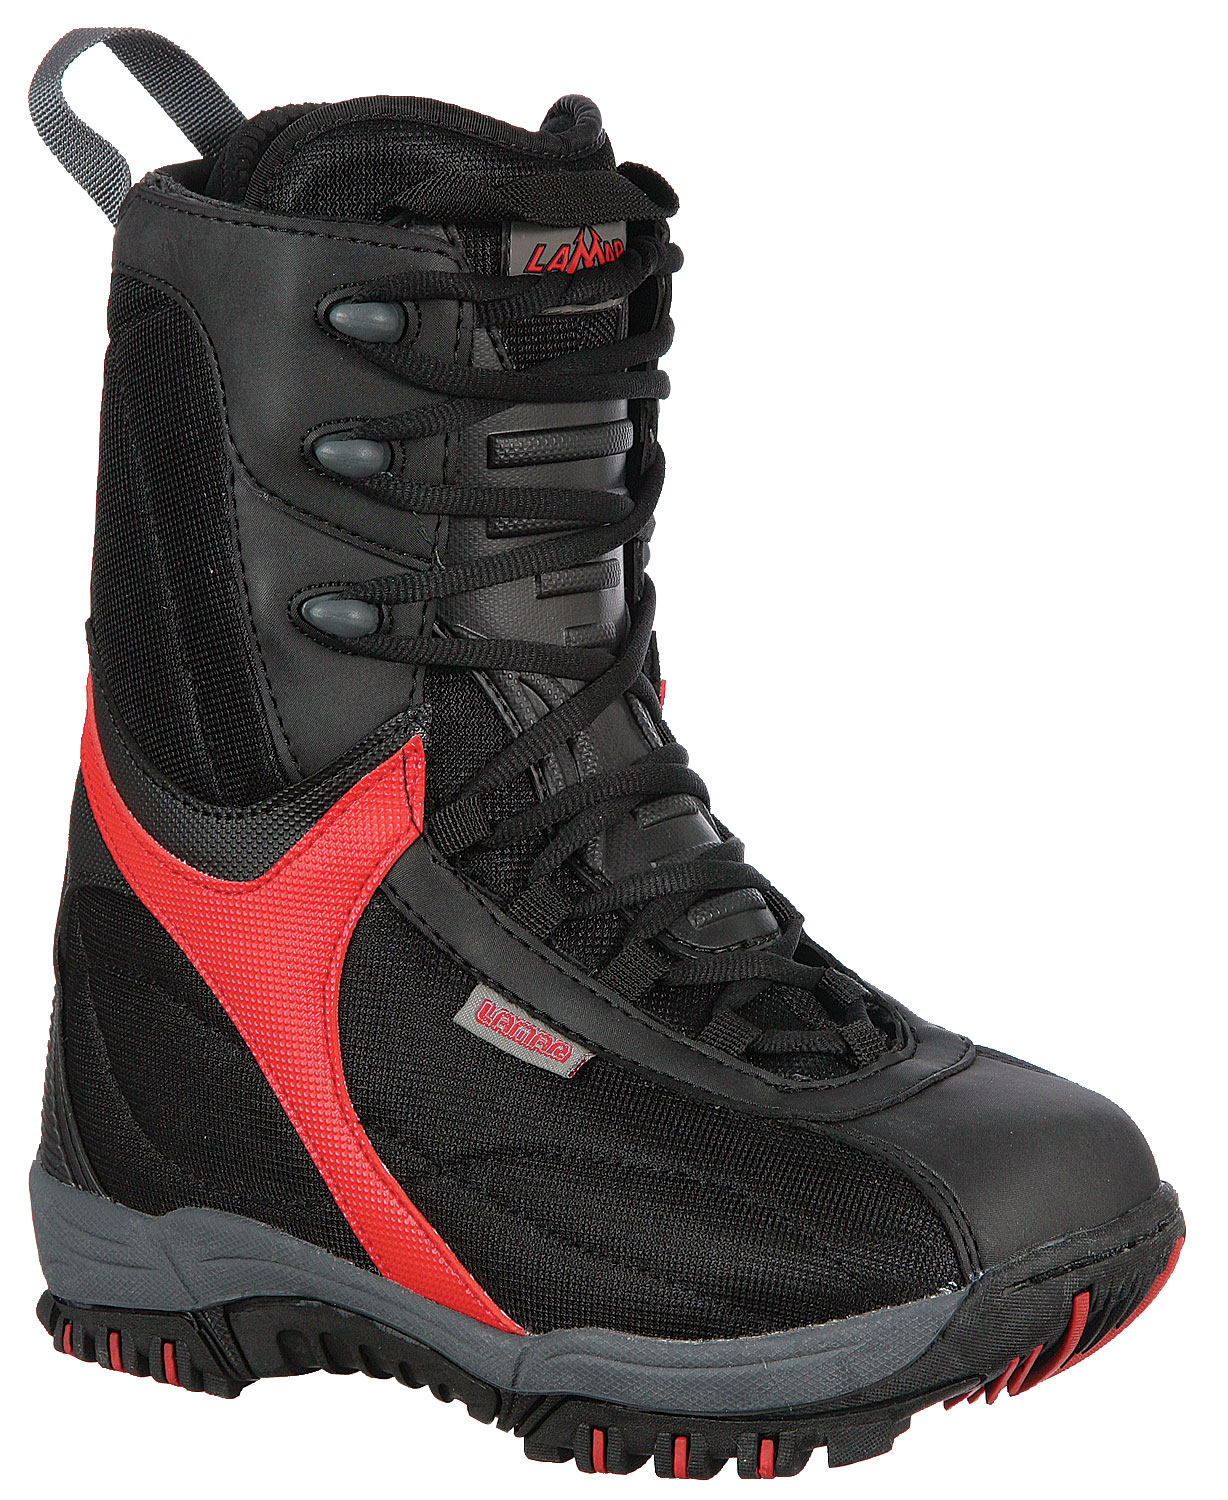 Snowboard The Lamar Demon snowboarding boot for kids offers a secure and comfortable fit by combining a thermal wrap EVA liner and internal heel hold lace harness with a nylon and synthetic upper. Key Features of the Lamar Demon Jr Snowboard Boots: All Mountain Performance Upper New EVA Rubber Cup Sole with Molded-in-Tech Grip Tread Pattern Internal Heel Hold Lace Harness NEW Molded Tongue Shield NEW HF Embossed Heel Counter and Back-Stay - $51.95